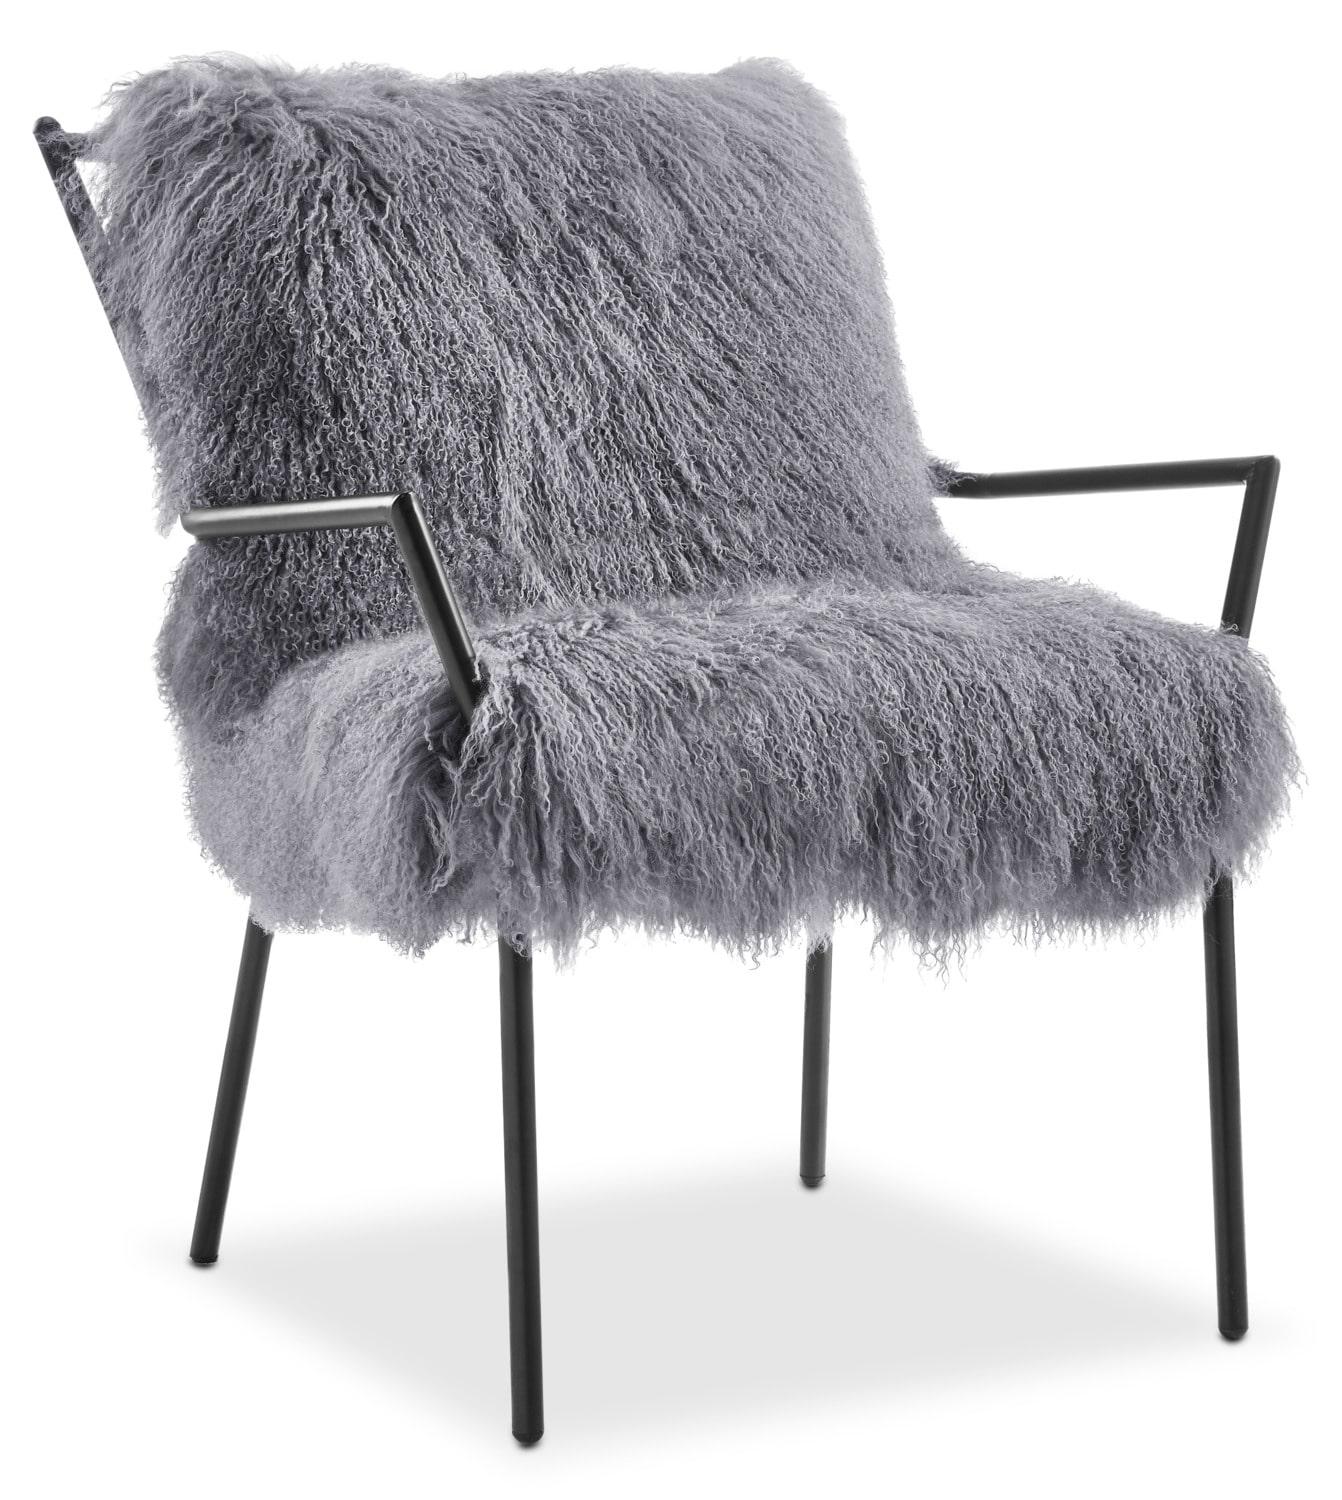 Lara Sheepskin Accent Chair   Black And Gray